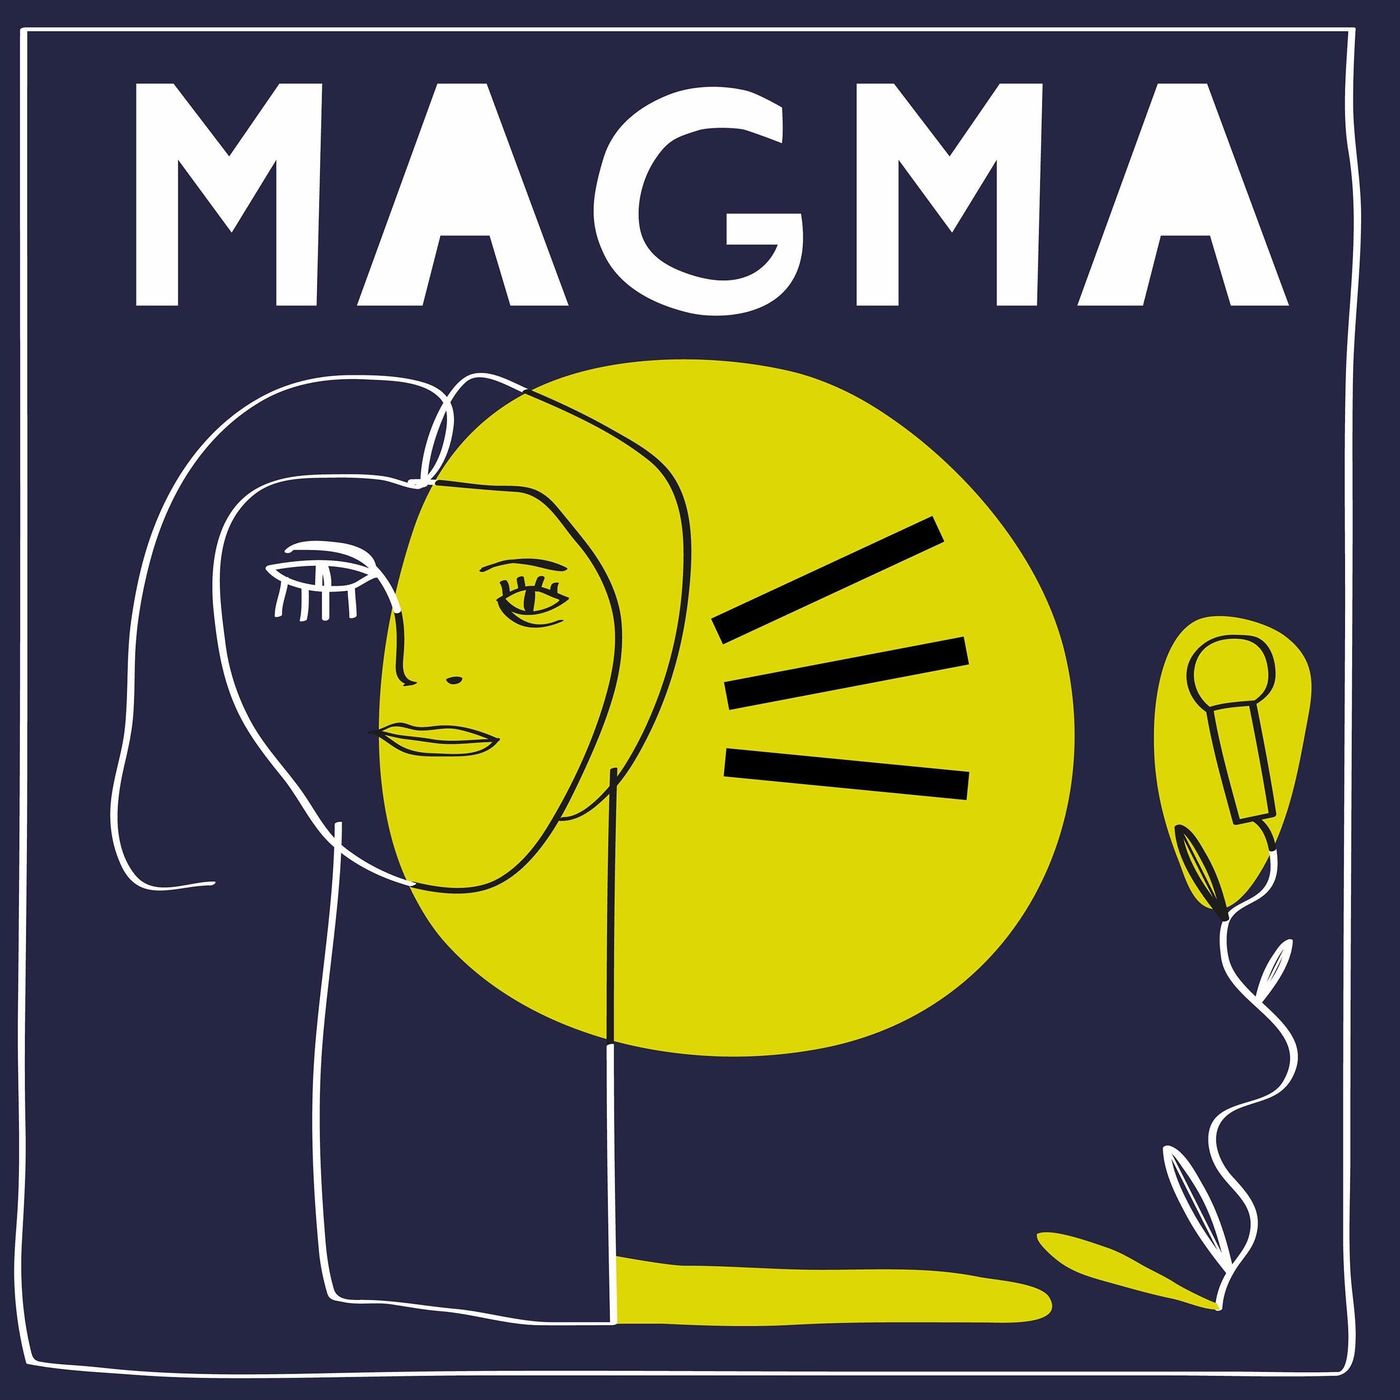 magma-podcast-culturclub.jpeg